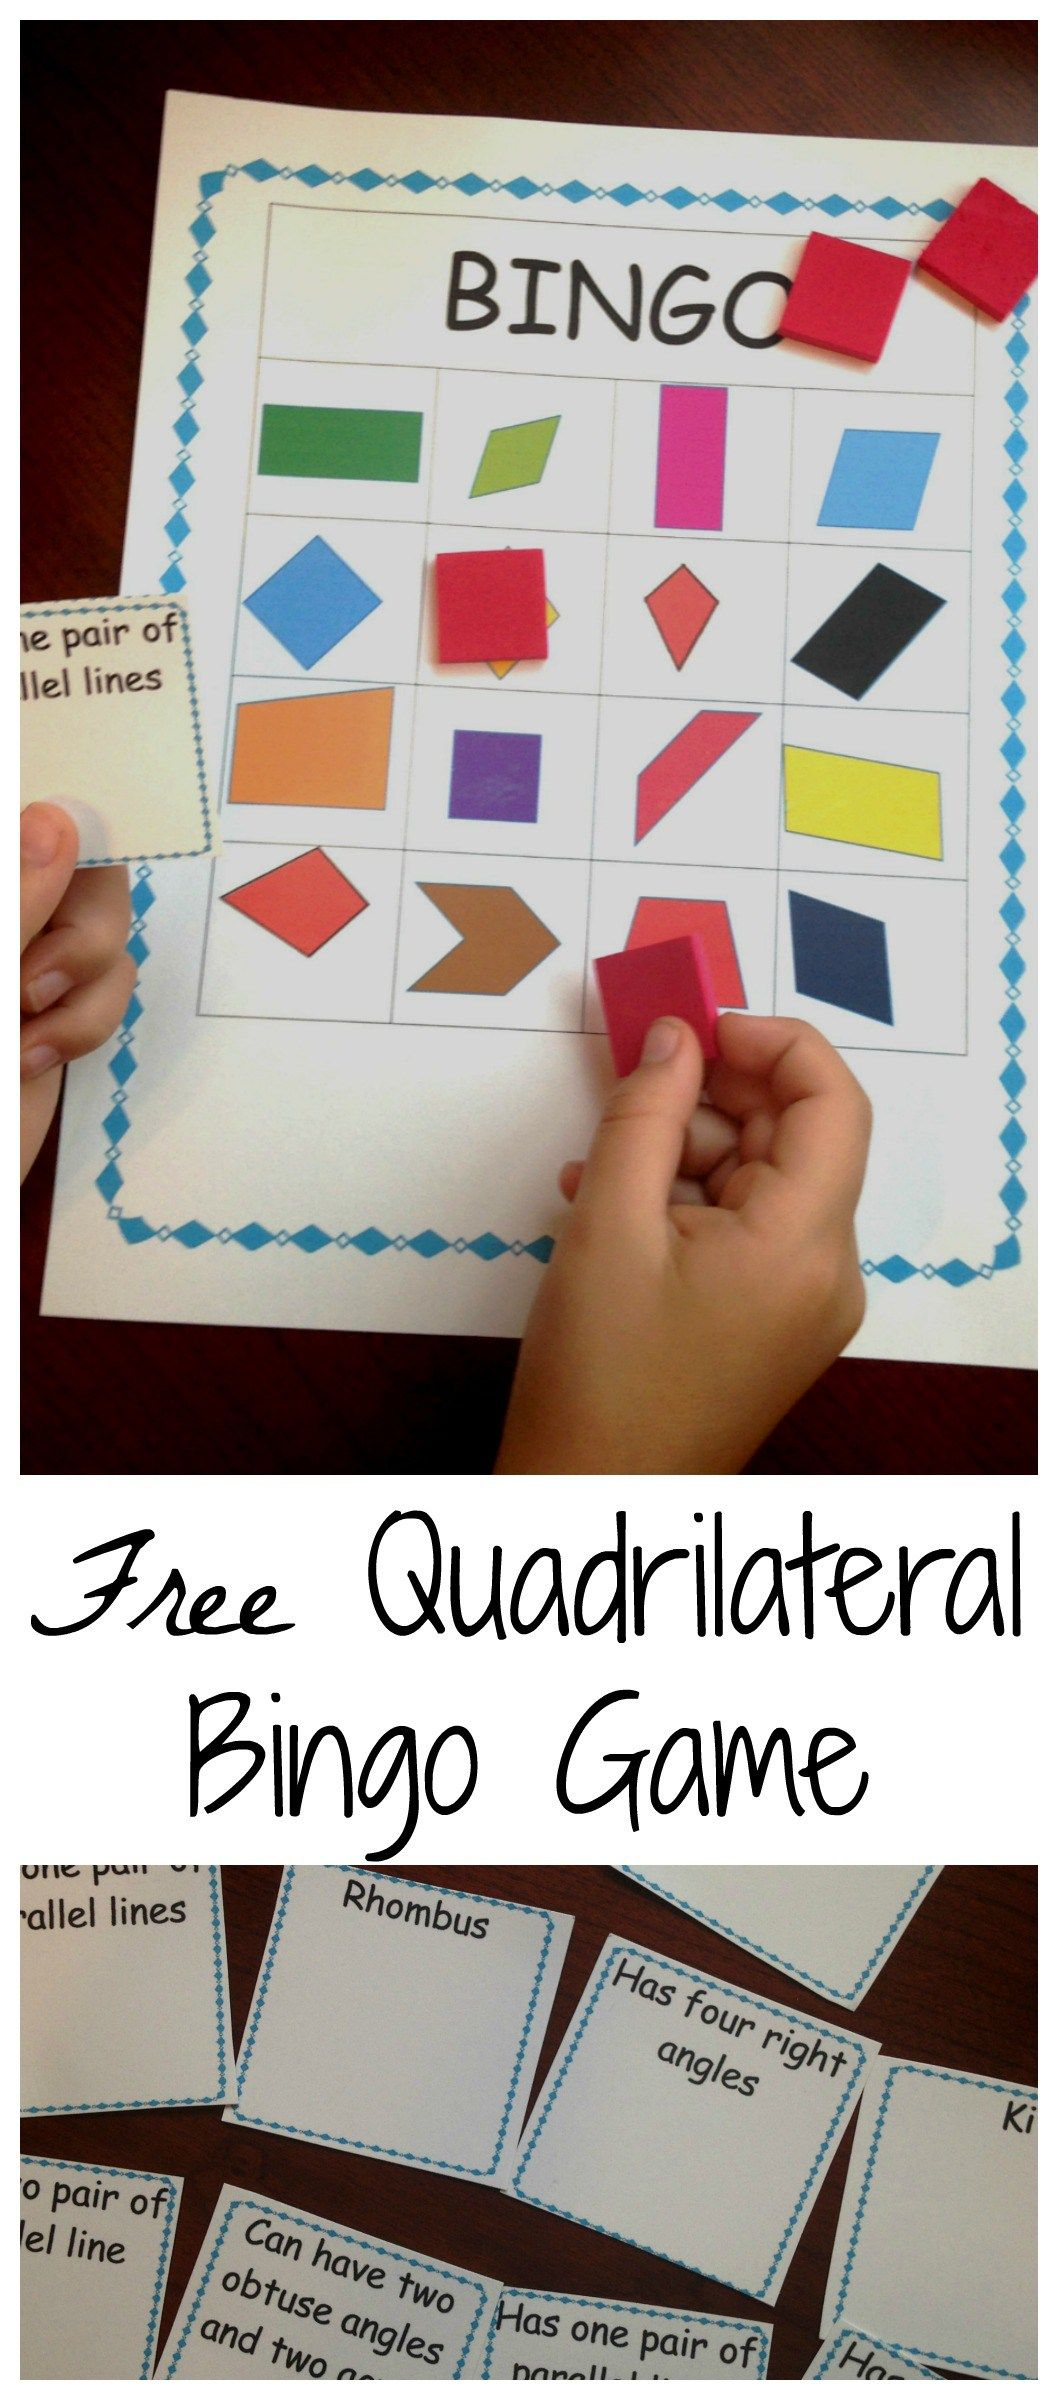 How To Review Classifying Quadrilaterals With This Free Quadrilateral Bingo Game